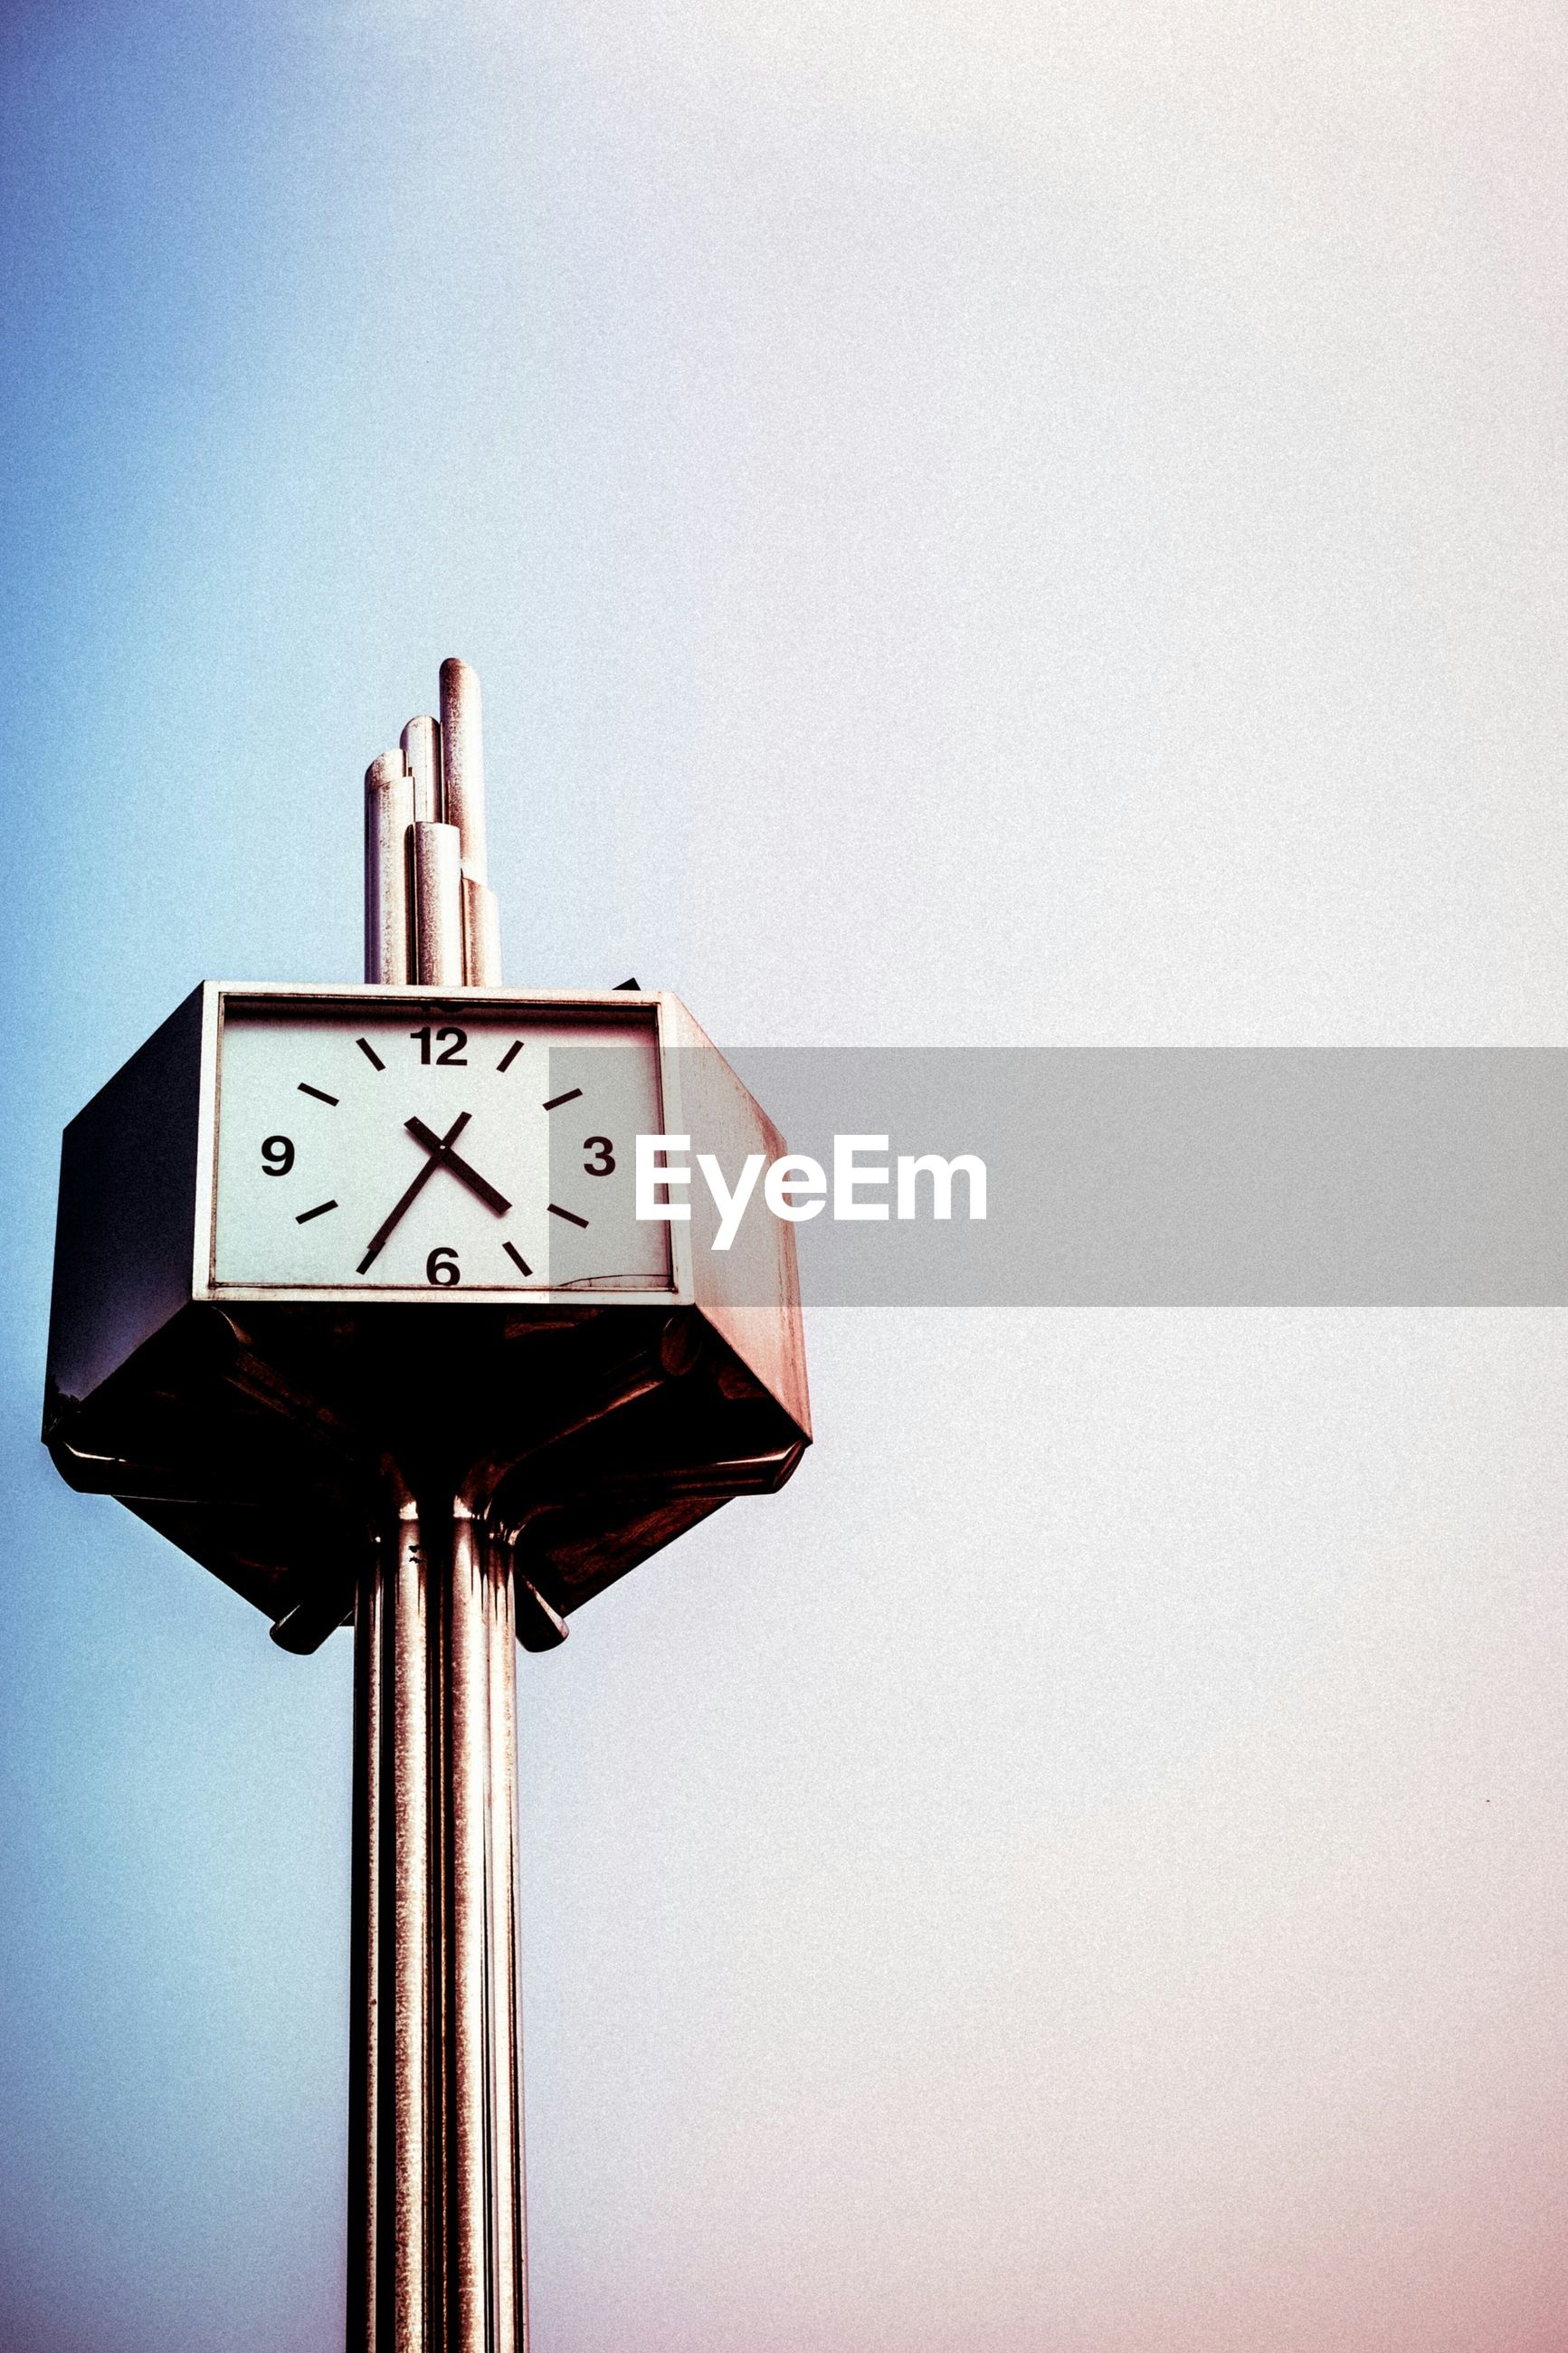 Low angle view of clock on pole against clear sky